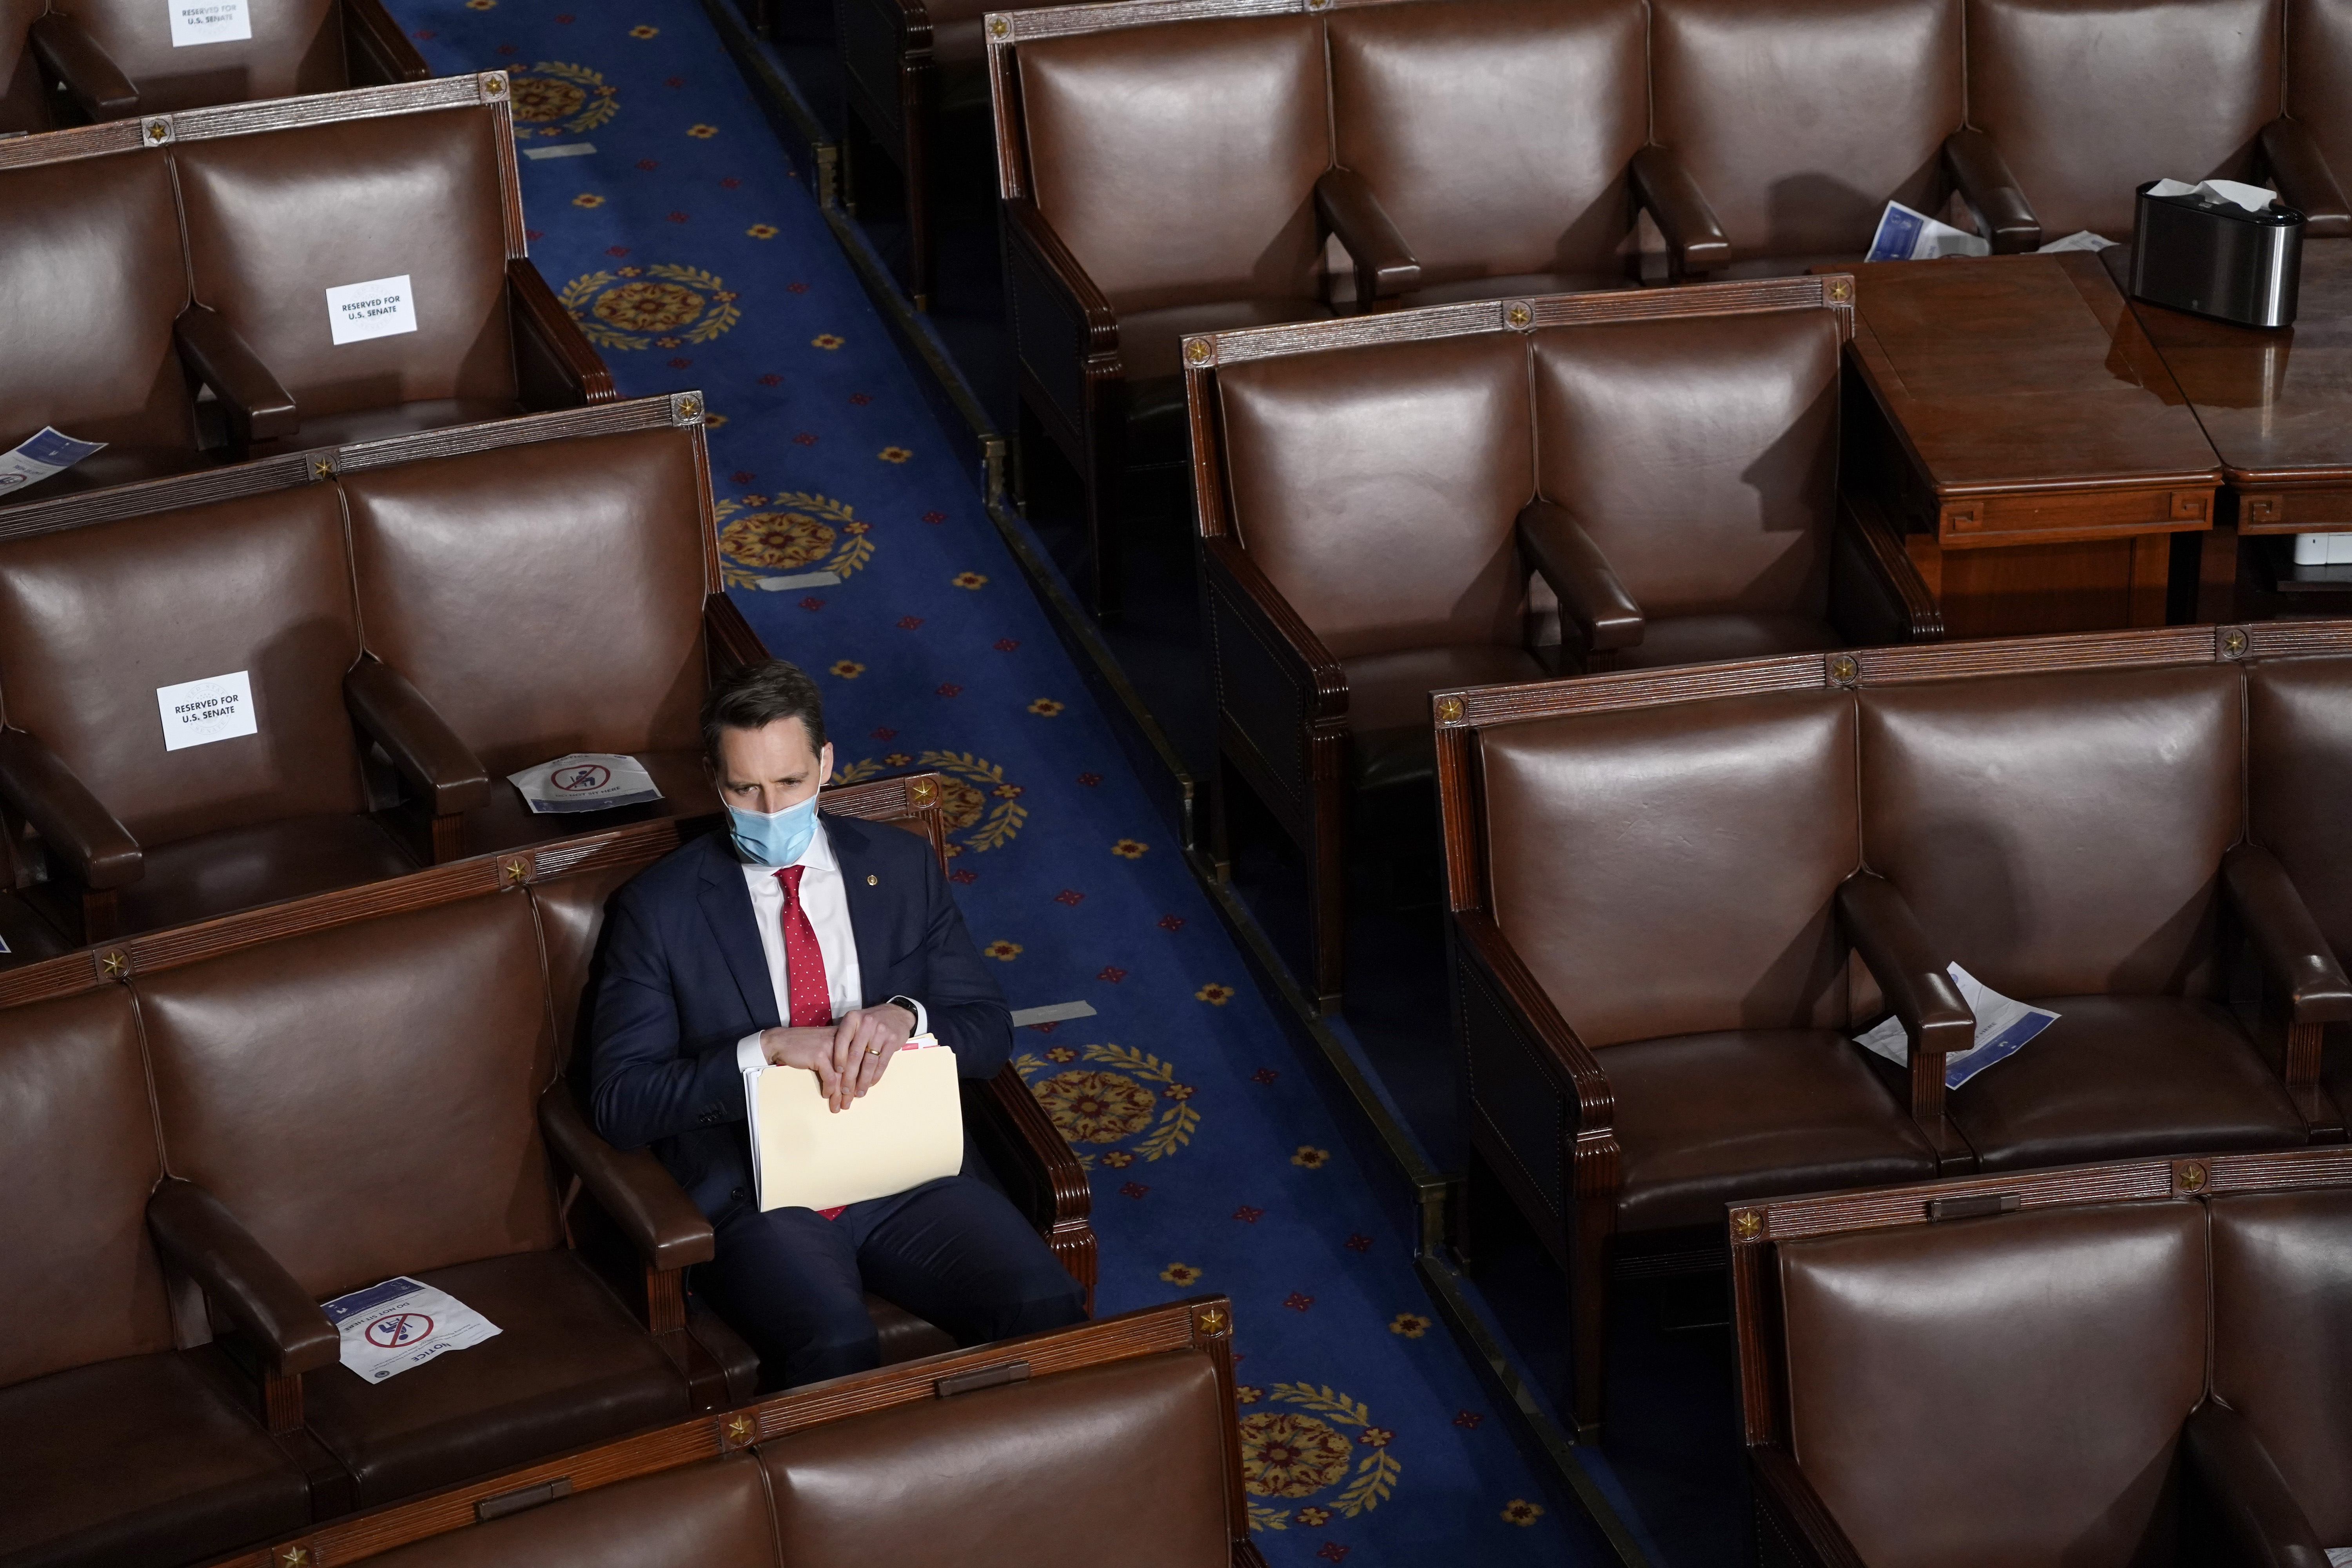 Senator Josh Hawley sitting in a seat in Congress surrounded by empty seats.